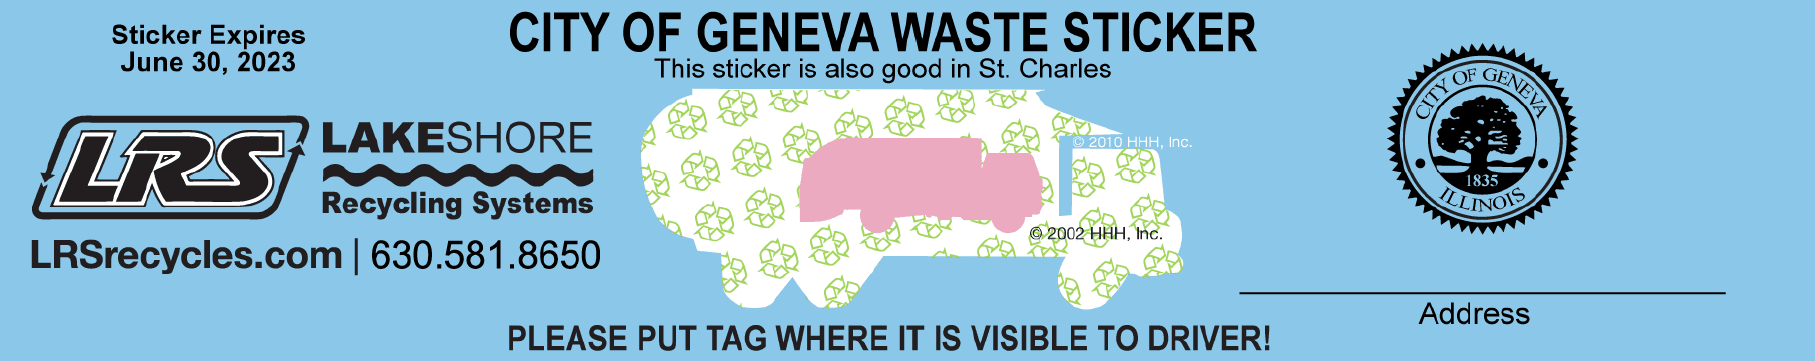 Geneva Garbage Sticker